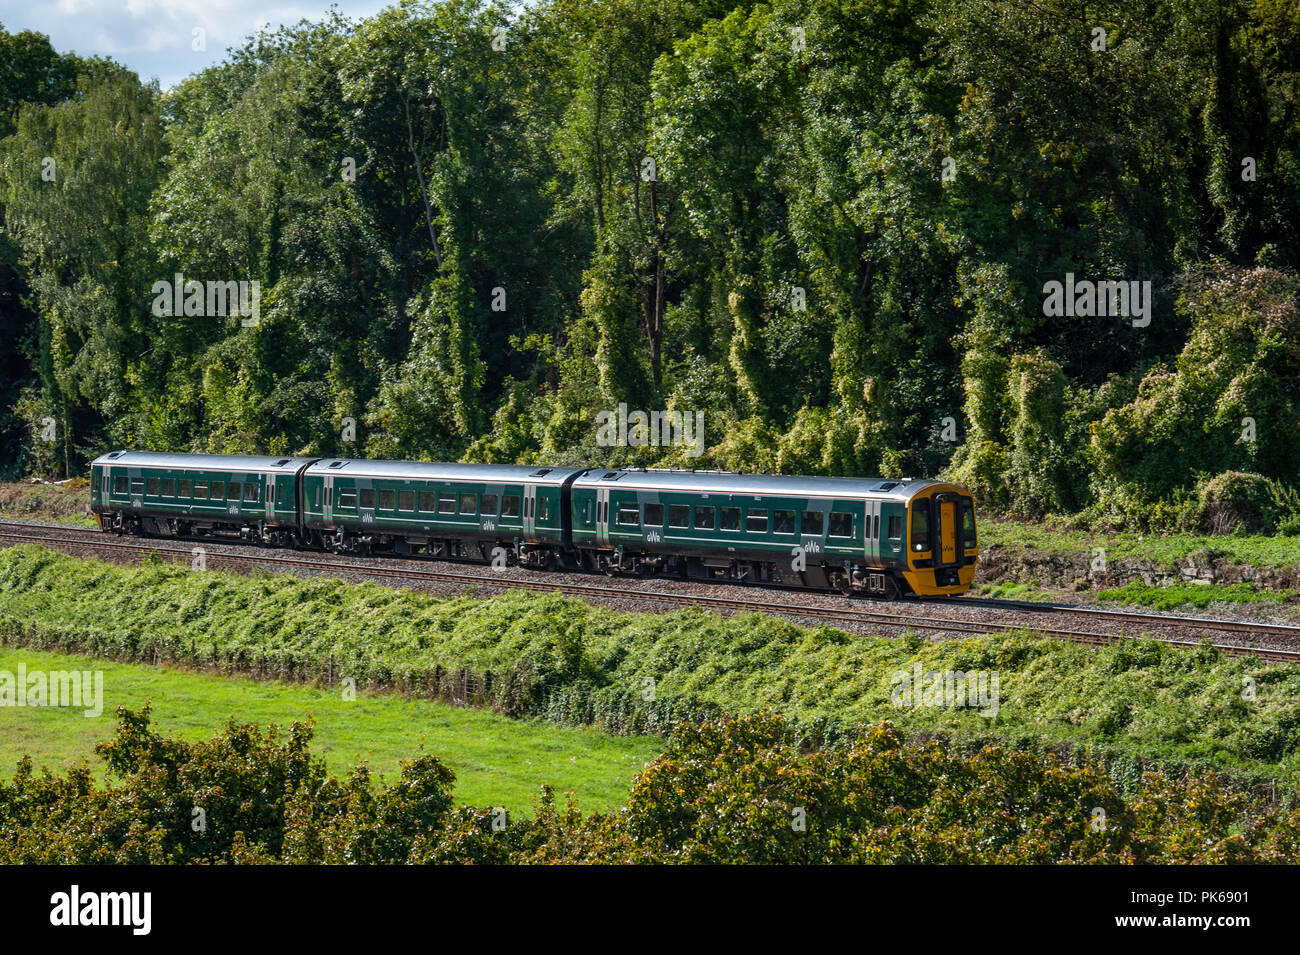 A GWR three carriage DMU in the Avon valley just coming to Avoncliff Halt, near Bradford on Avon, Wiltshire, UK. - Stock Image